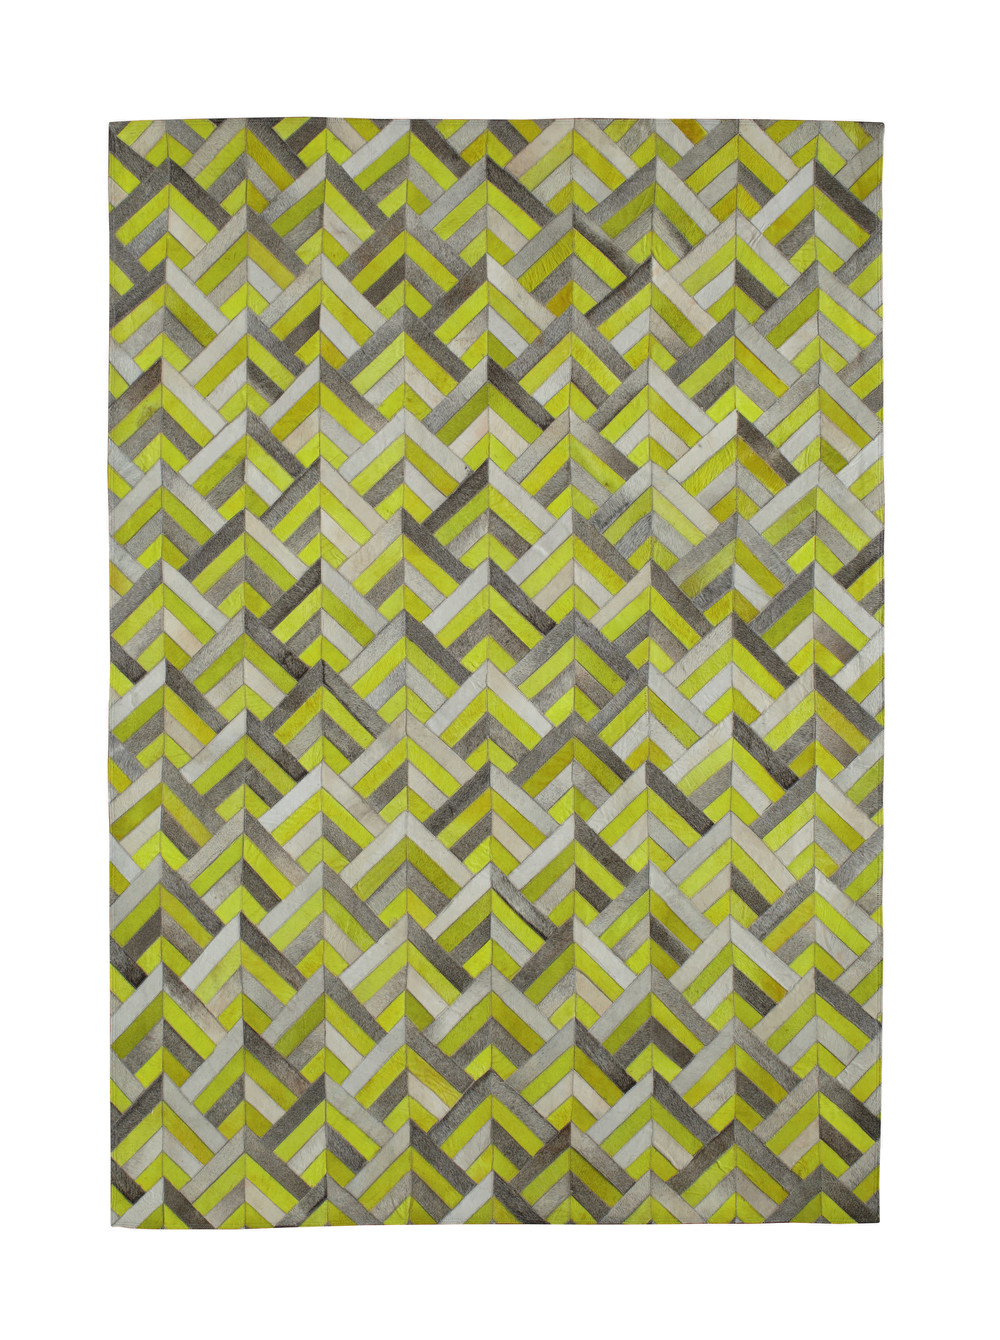 tapis en cuir jaune 140 x 200 cm boomerang maisons du monde. Black Bedroom Furniture Sets. Home Design Ideas